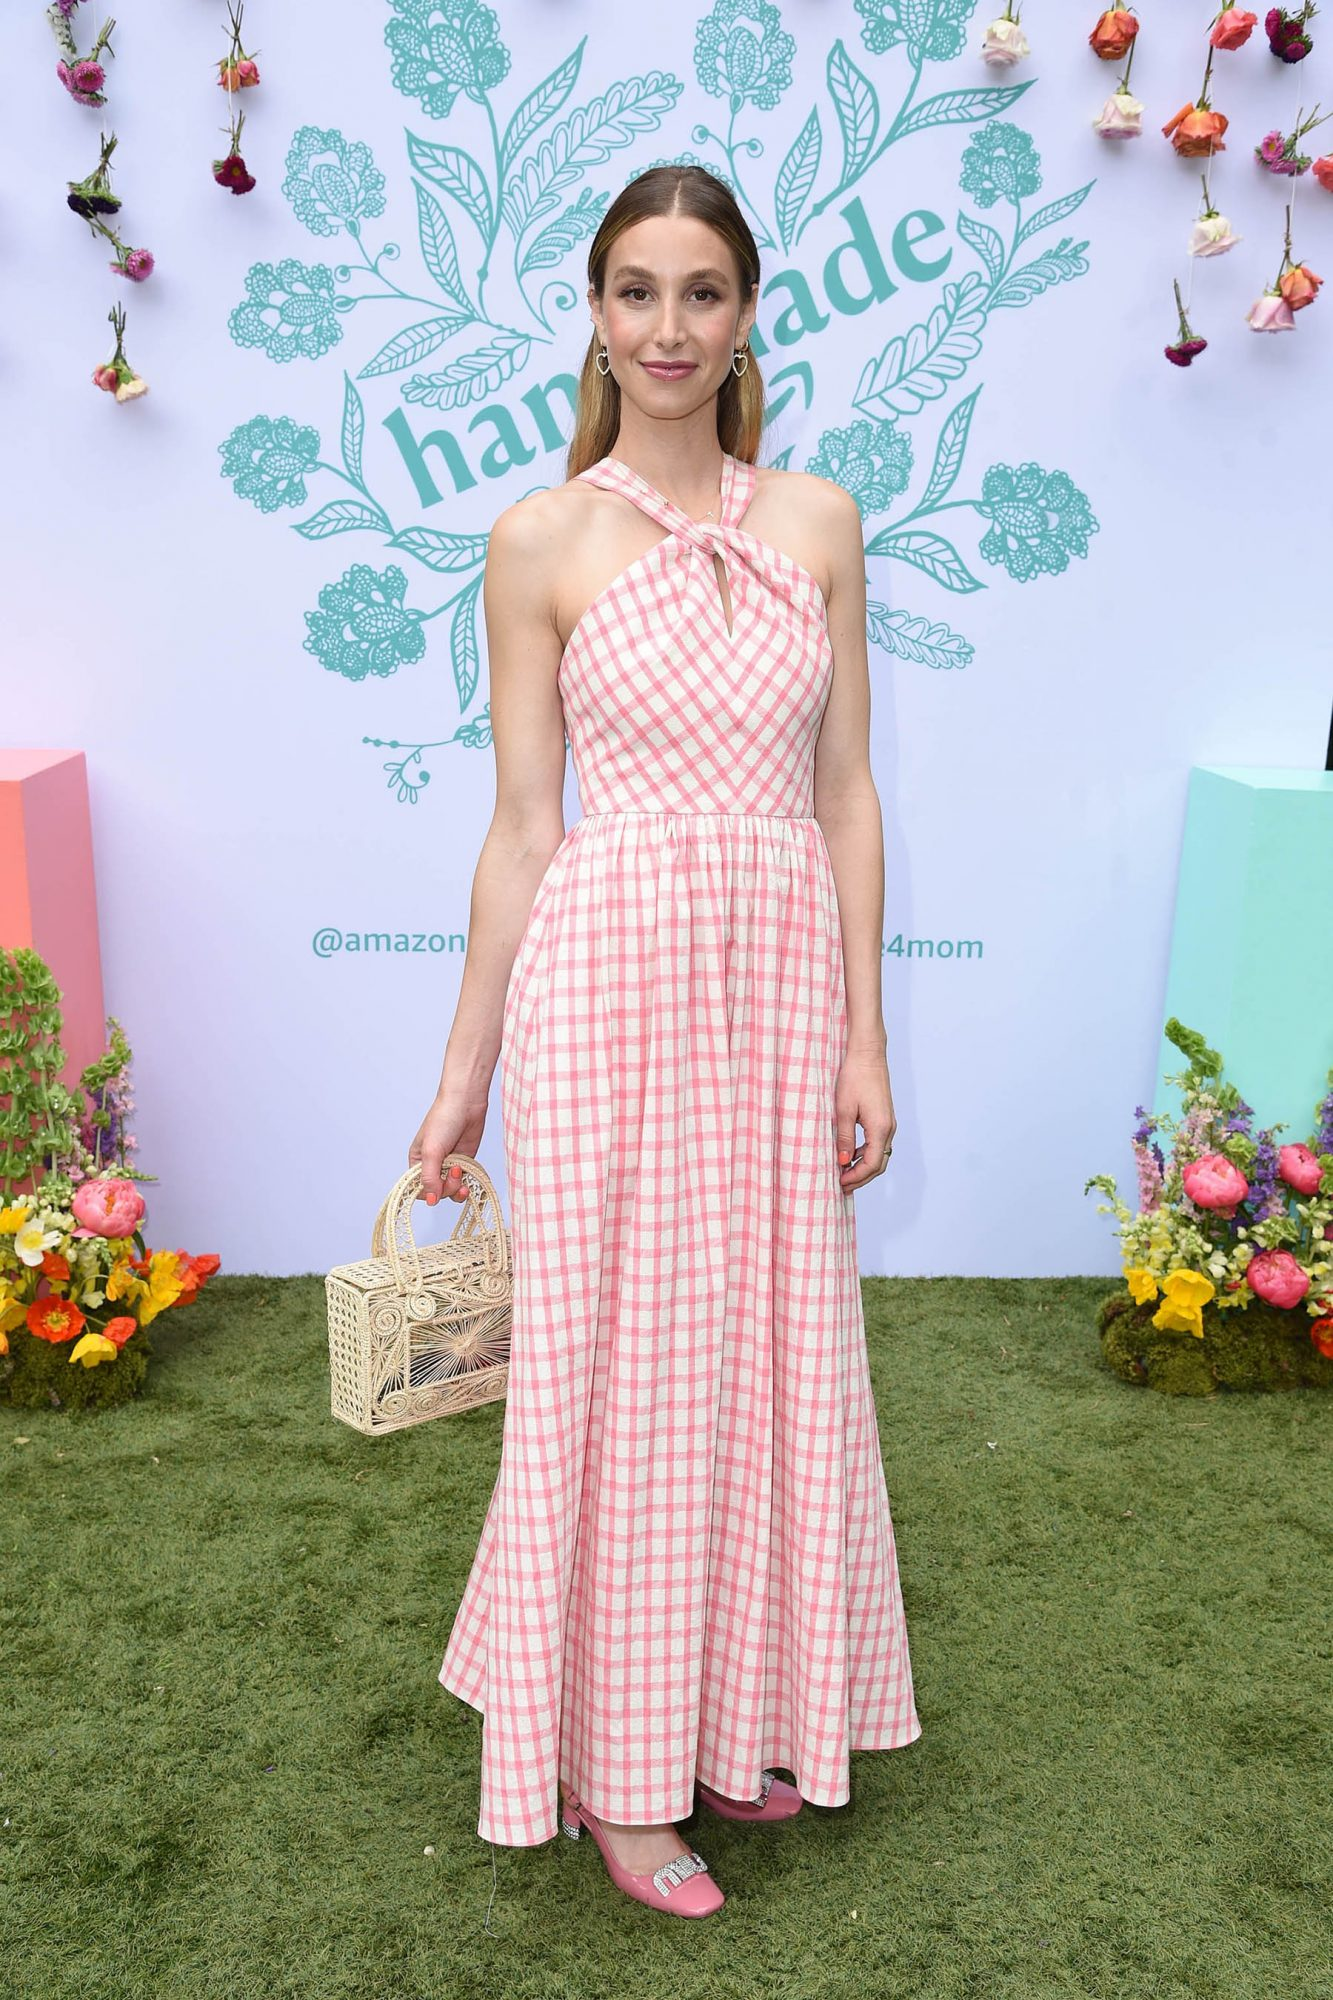 Whitney Port celebrated Mother's Day at the Amazon Handmade Event